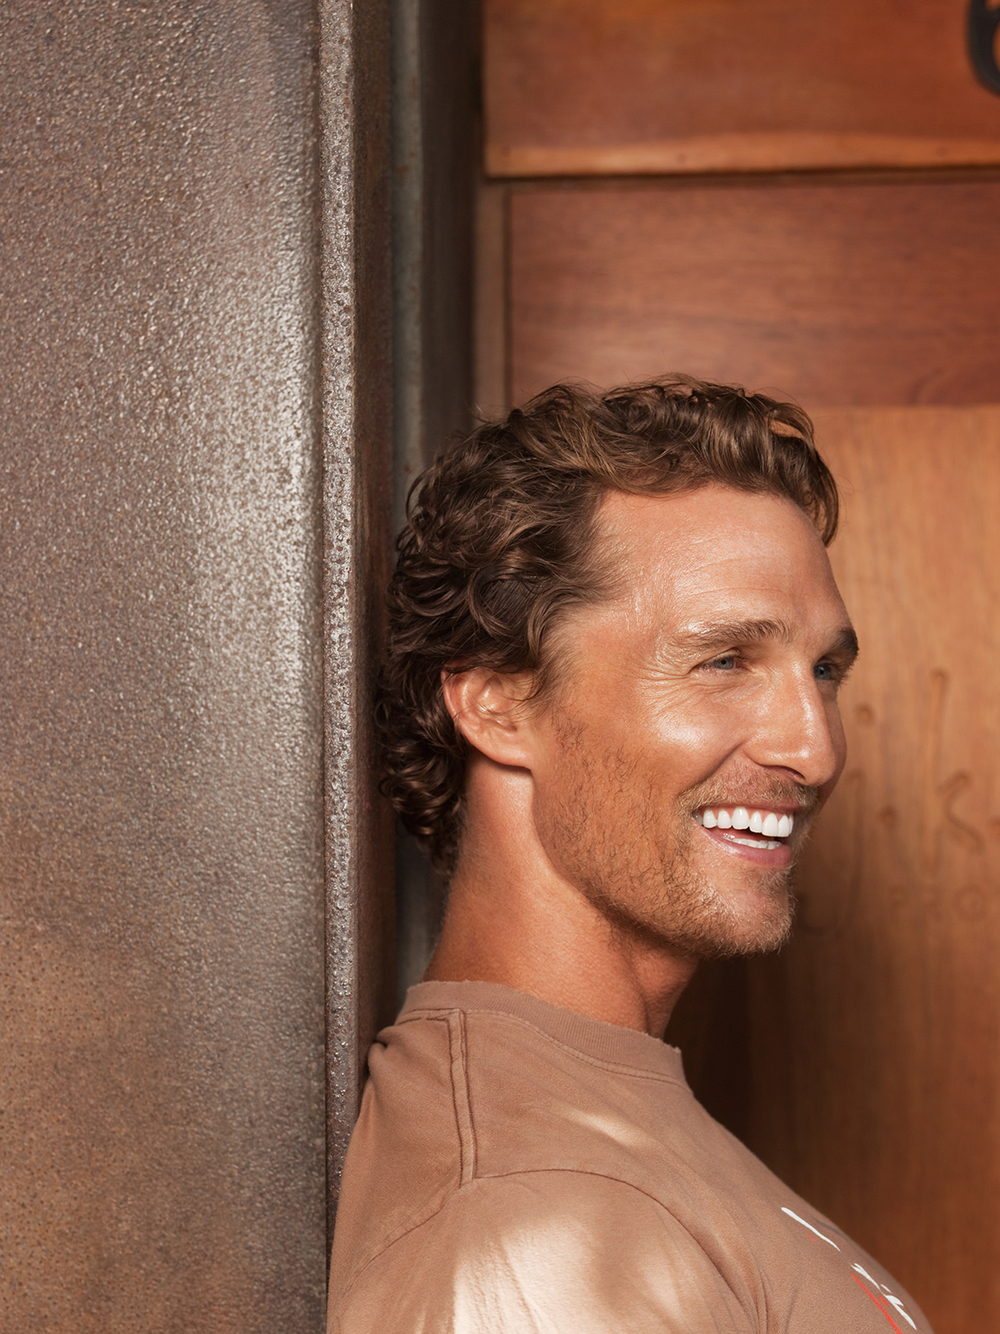 matthew mcconaughey0063_RAW copy.jpg